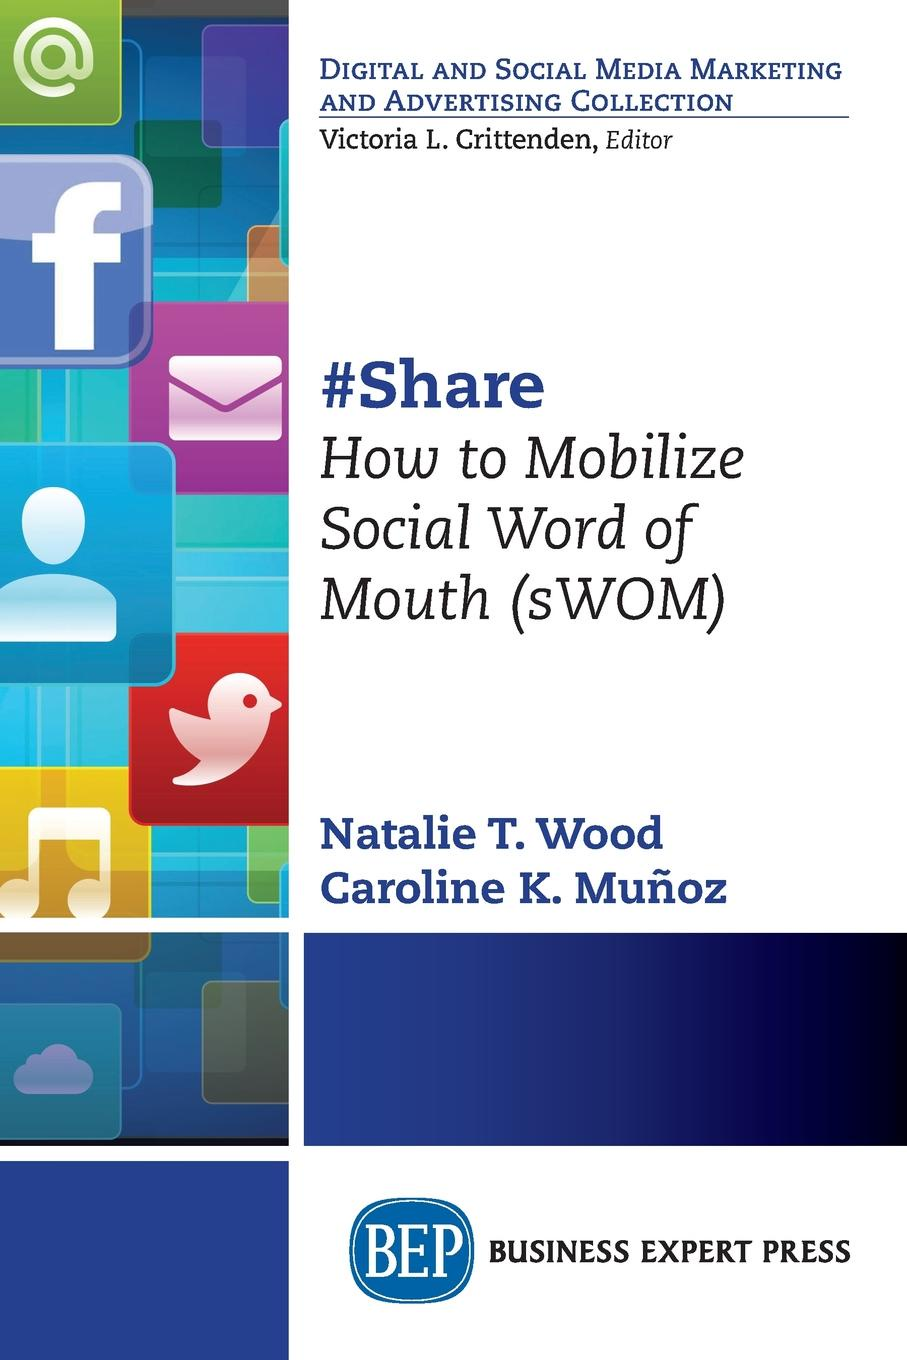 Natalie T. Wood, Caroline K. Muñoz #Share. How to Mobilize Social Word of Mouth (sWOM) nicole matejic social media rules of engagement why your online narrative is the best weapon during a crisis